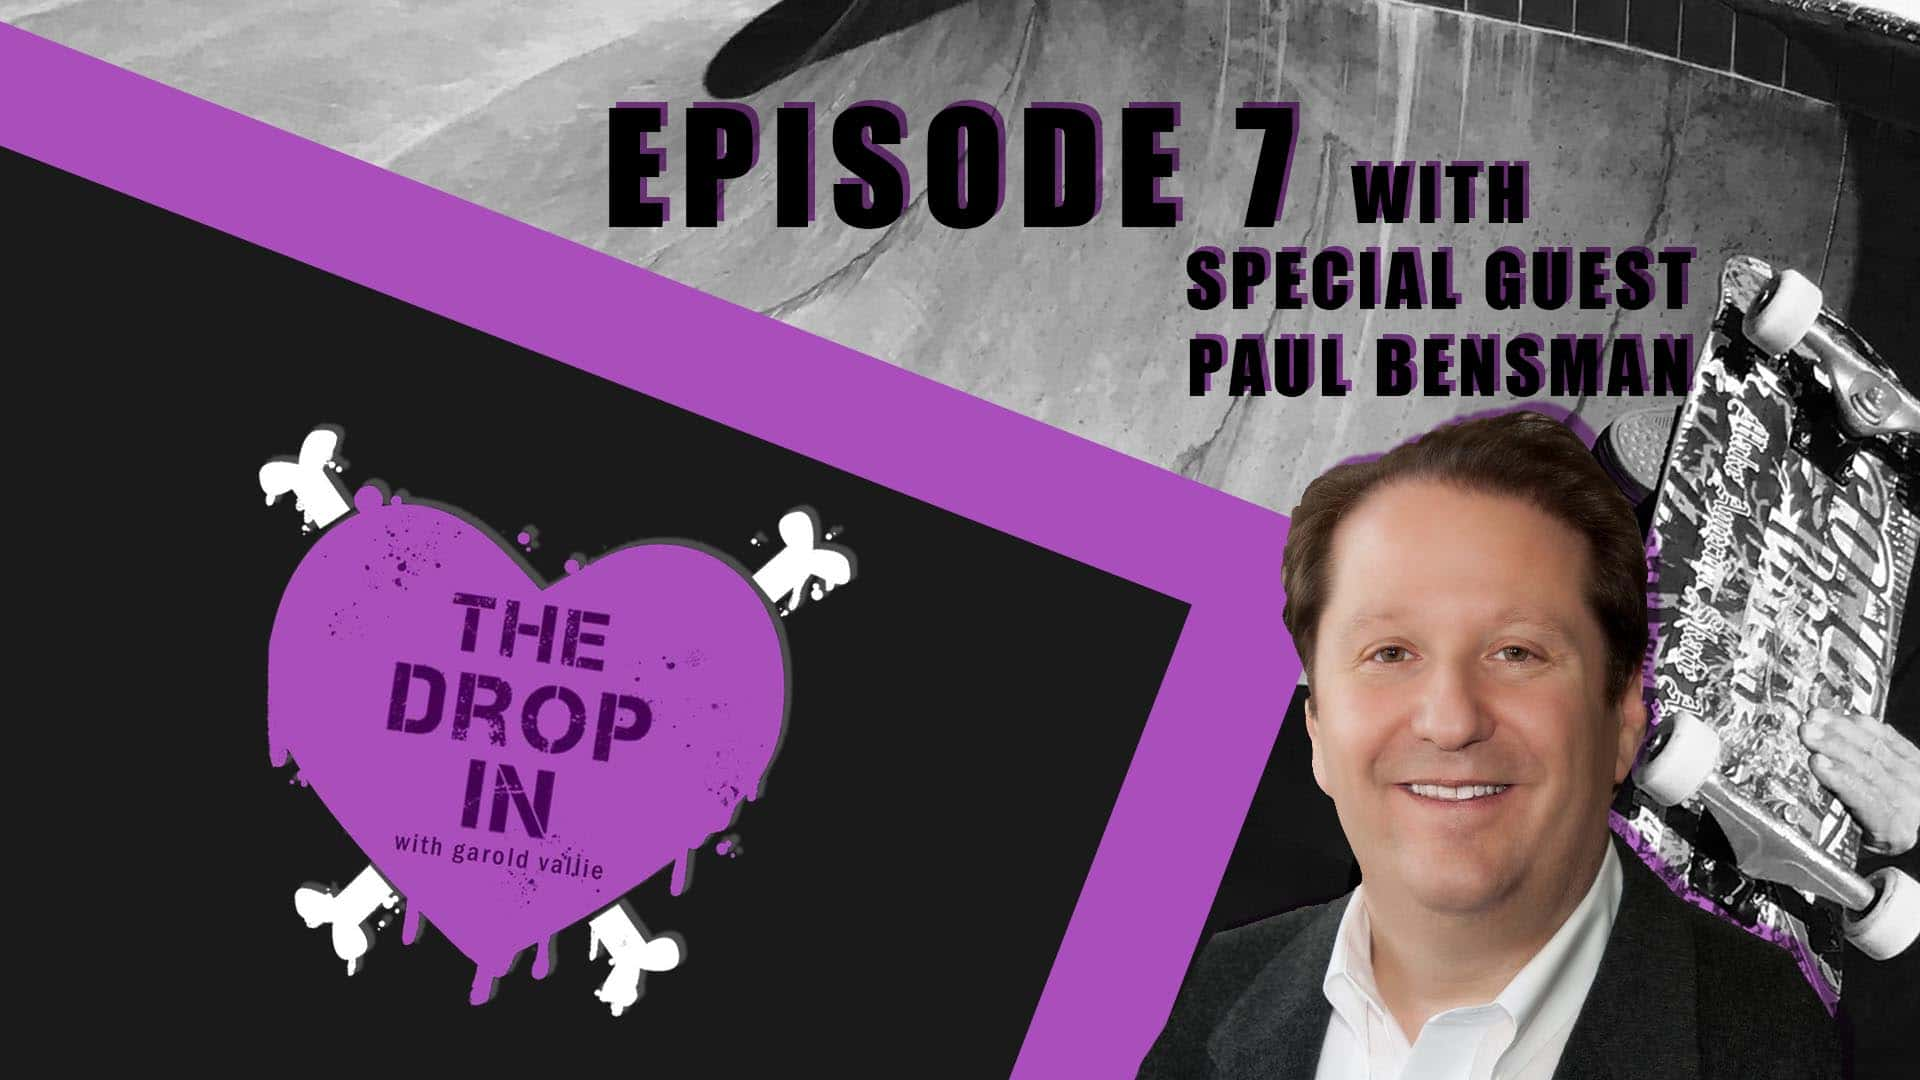 The Drop In with Garold Vallie - Episode 7